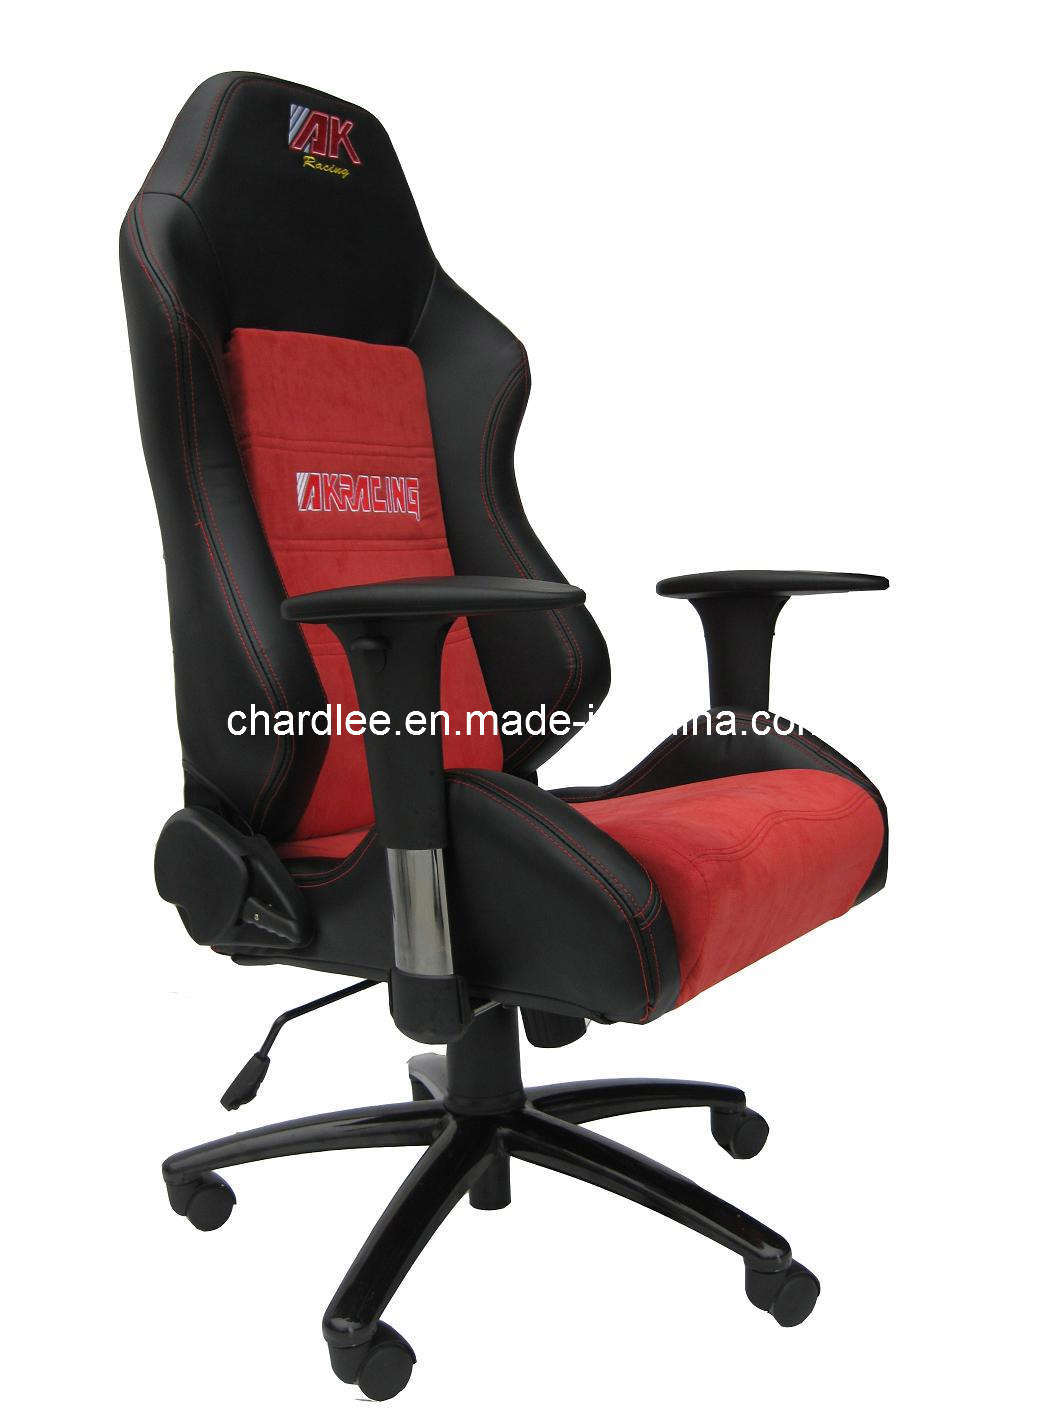 Race car desk chair Office Chairs - Compare Prices, Read Reviews